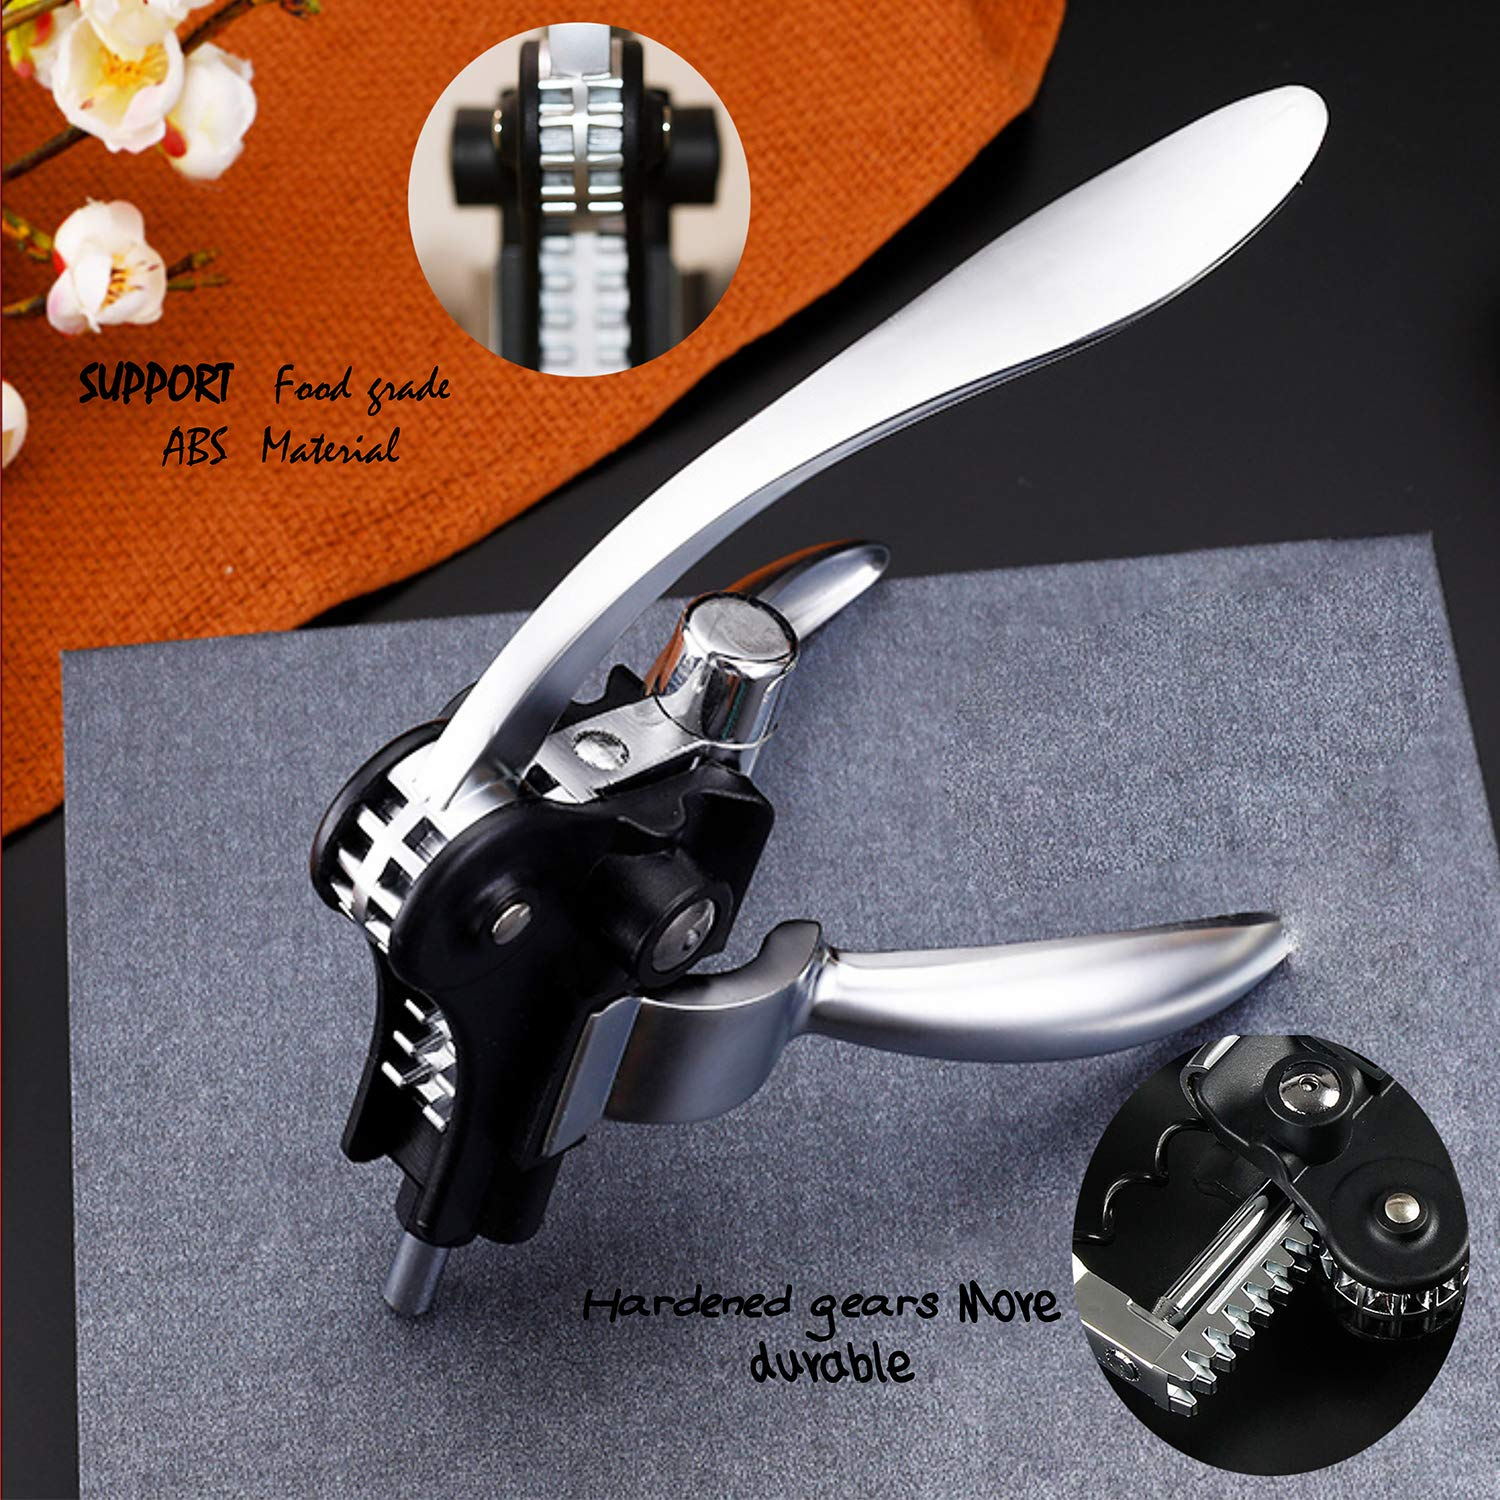 Wine Opener Screwpull Lever Rabbit Corkscrew Stylish Wine Accessory Gift Box Set with foil cutter extra spiral worm and vacuum pump&stopper by WTIANQI (Image #3)